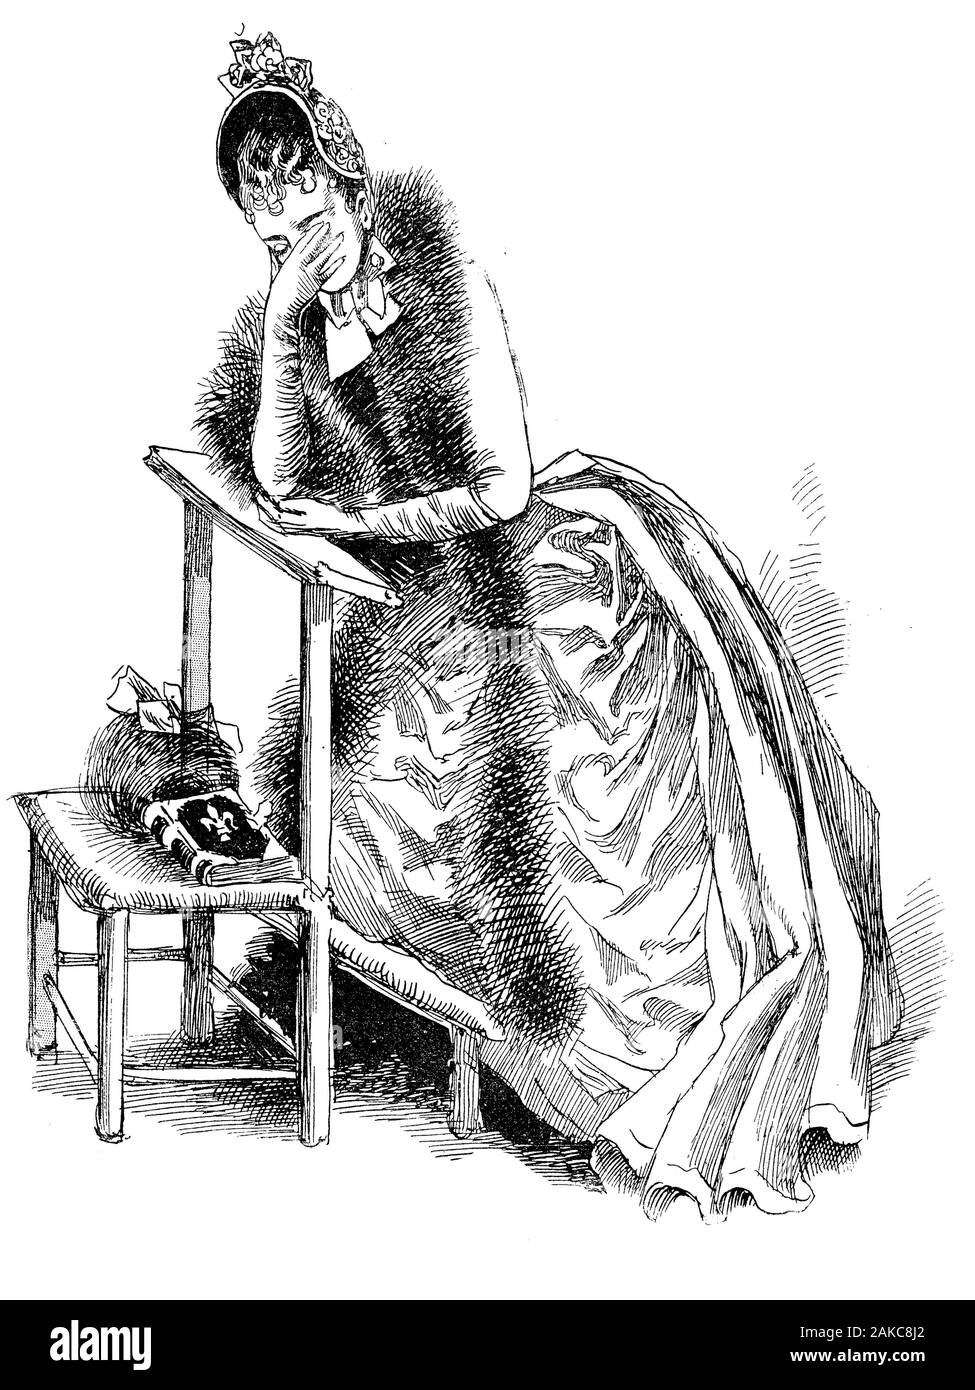 french portrait and caricature young broken hearted woman fancy dressed with fur and fashionable hat cries praying on a kneeler in church alone 2AKC8J2